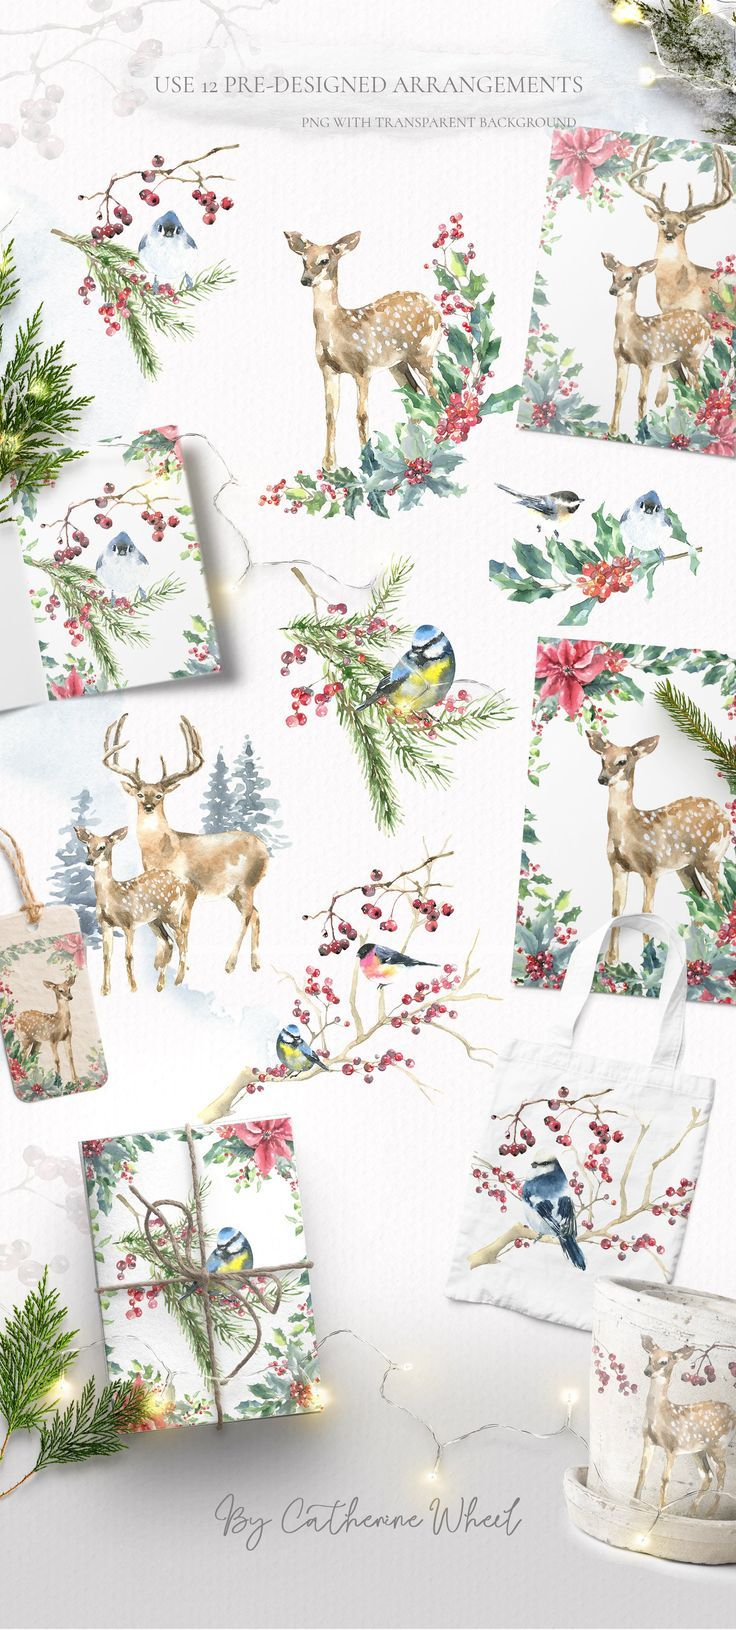 Christmas Deer Clipart Watercolor Woodland Animals Vintage